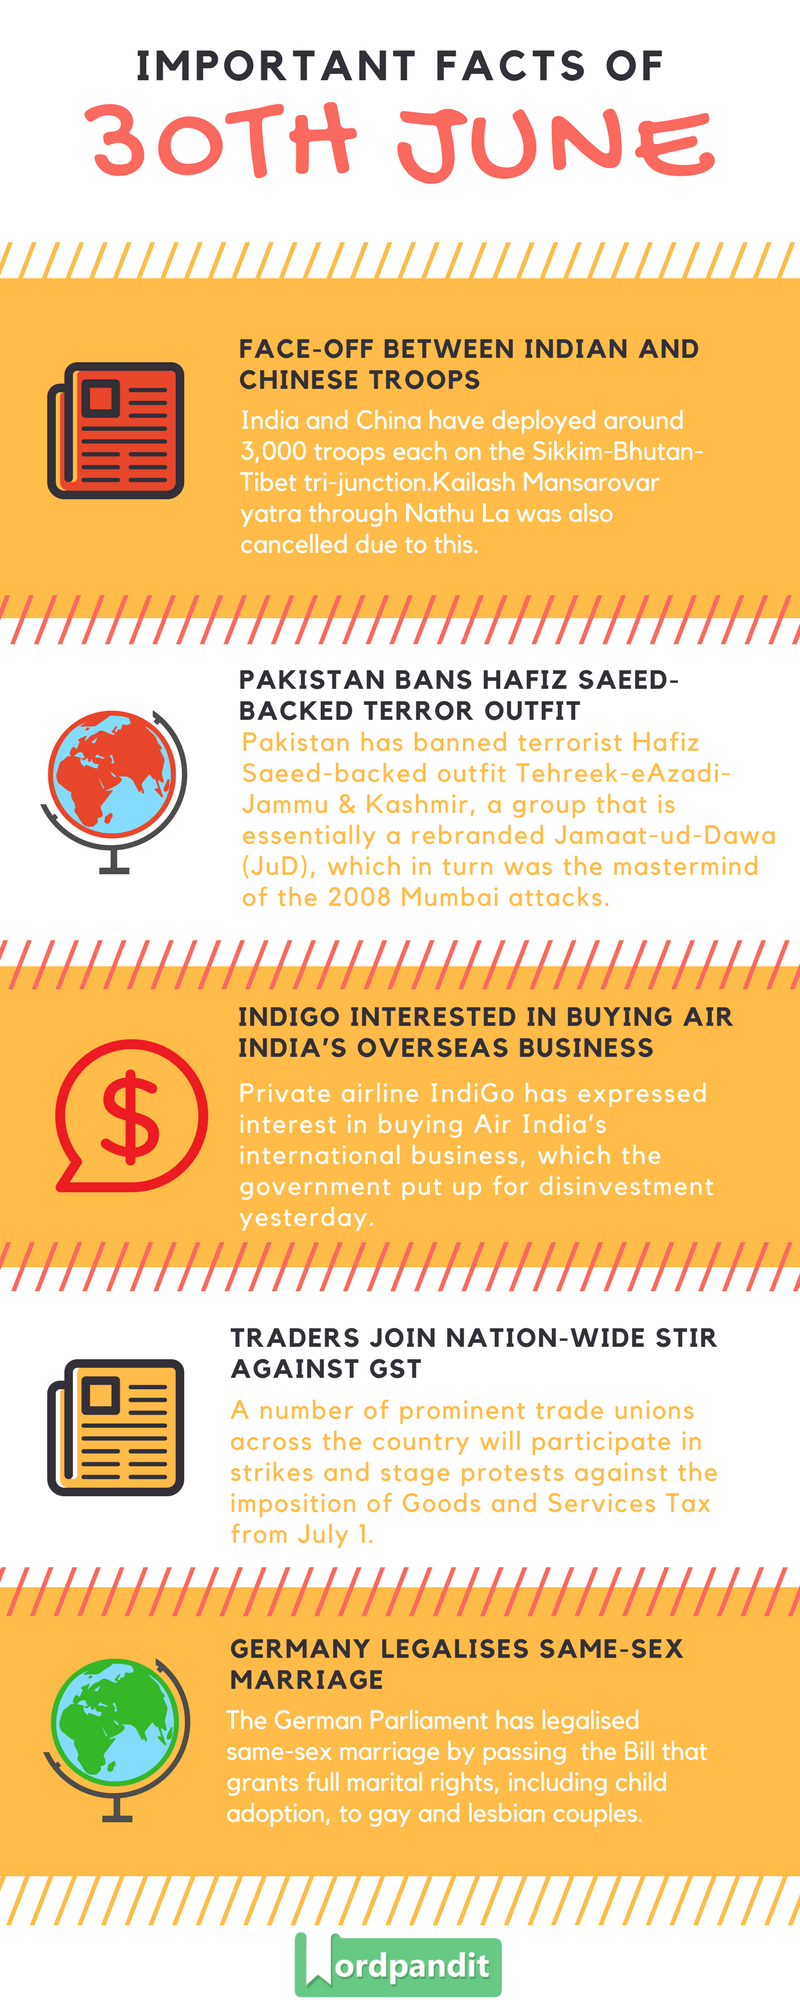 Daily-Current-Affairs-30-june-2017-and-Current-Affairs-Infographic-30-june-2017